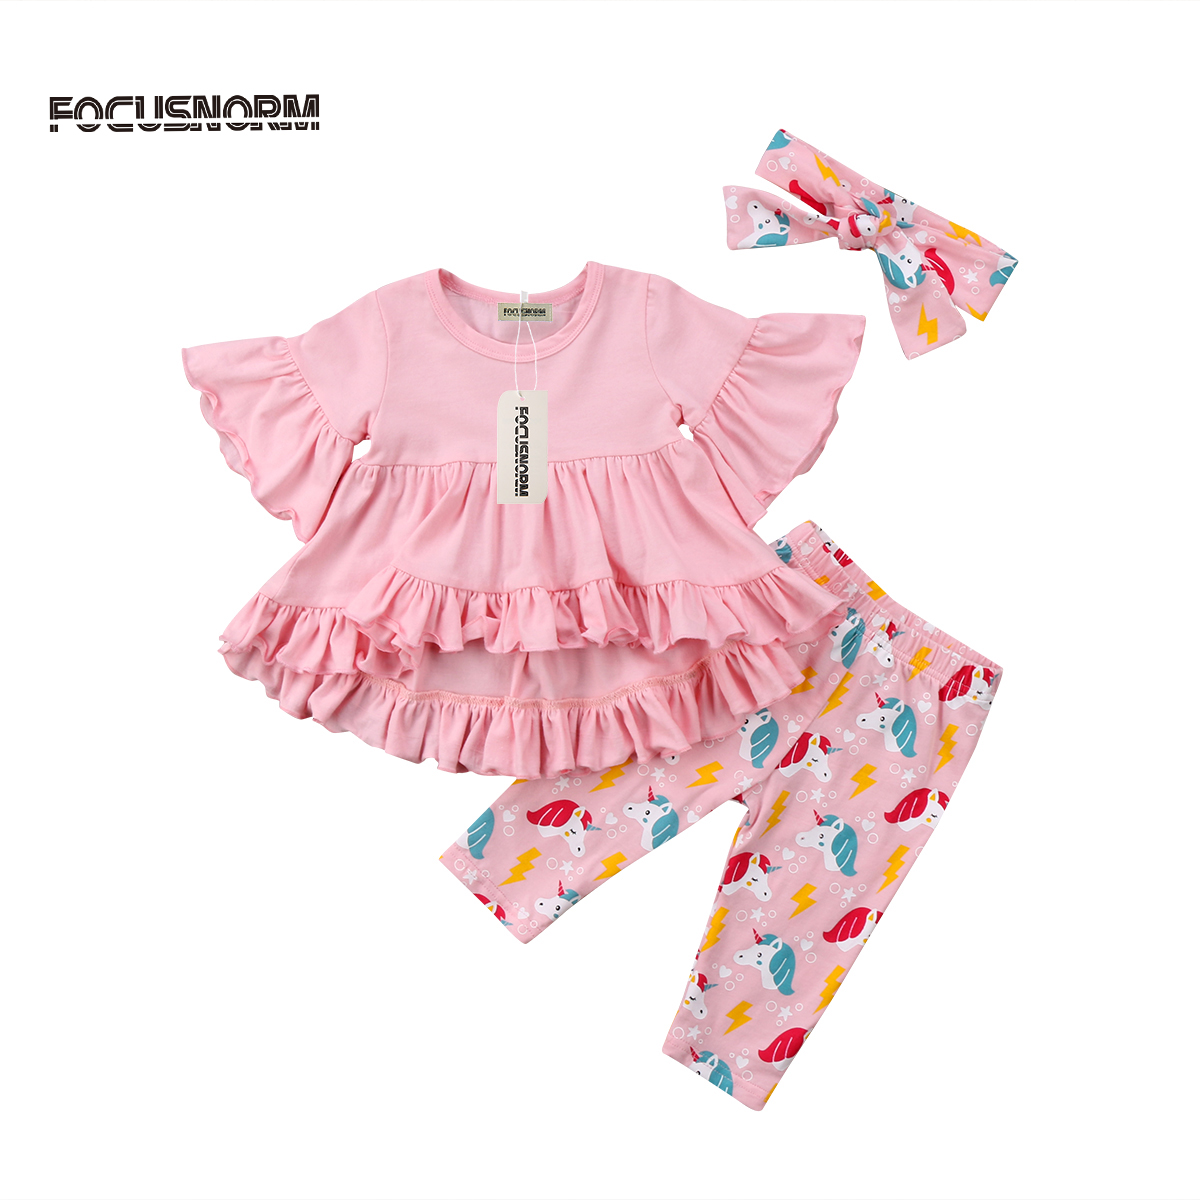 3pcs Kids Baby Girls Ruffle Dress Tops T shirt+Unicorn Long Pants 2Pcs Cartoon Outfits Set Party Clothes 2pcs children outfit clothes kids baby girl off shoulder cotton ruffled sleeve tops striped t shirt blue denim jeans sunsuit set